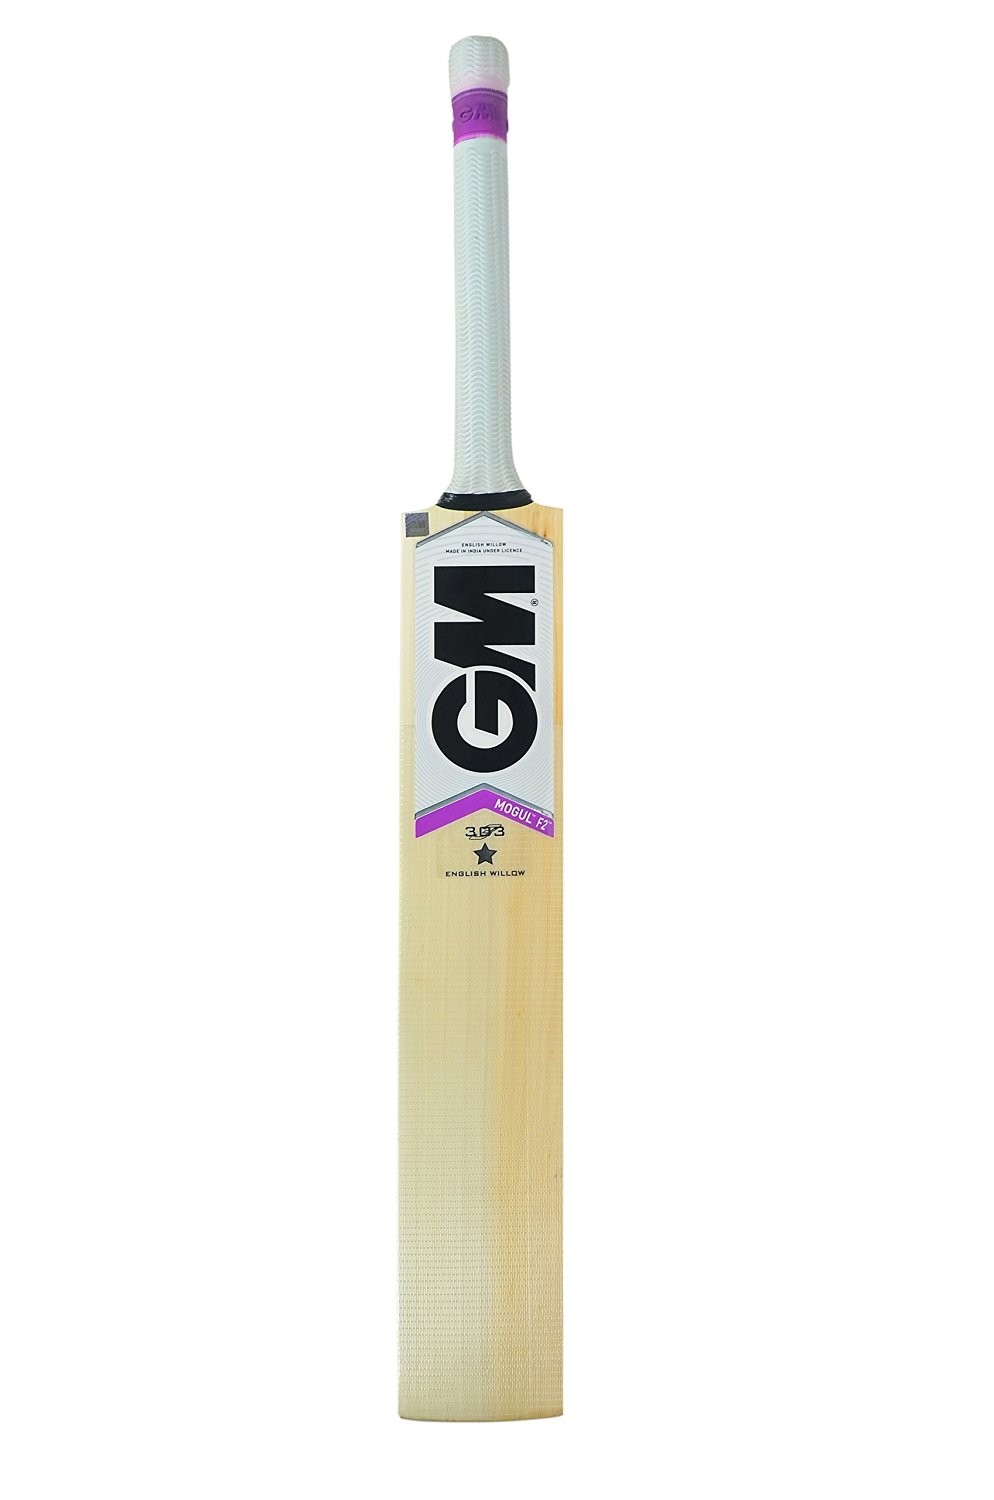 GM Mogul F2 303 English Willow Cricket Bat